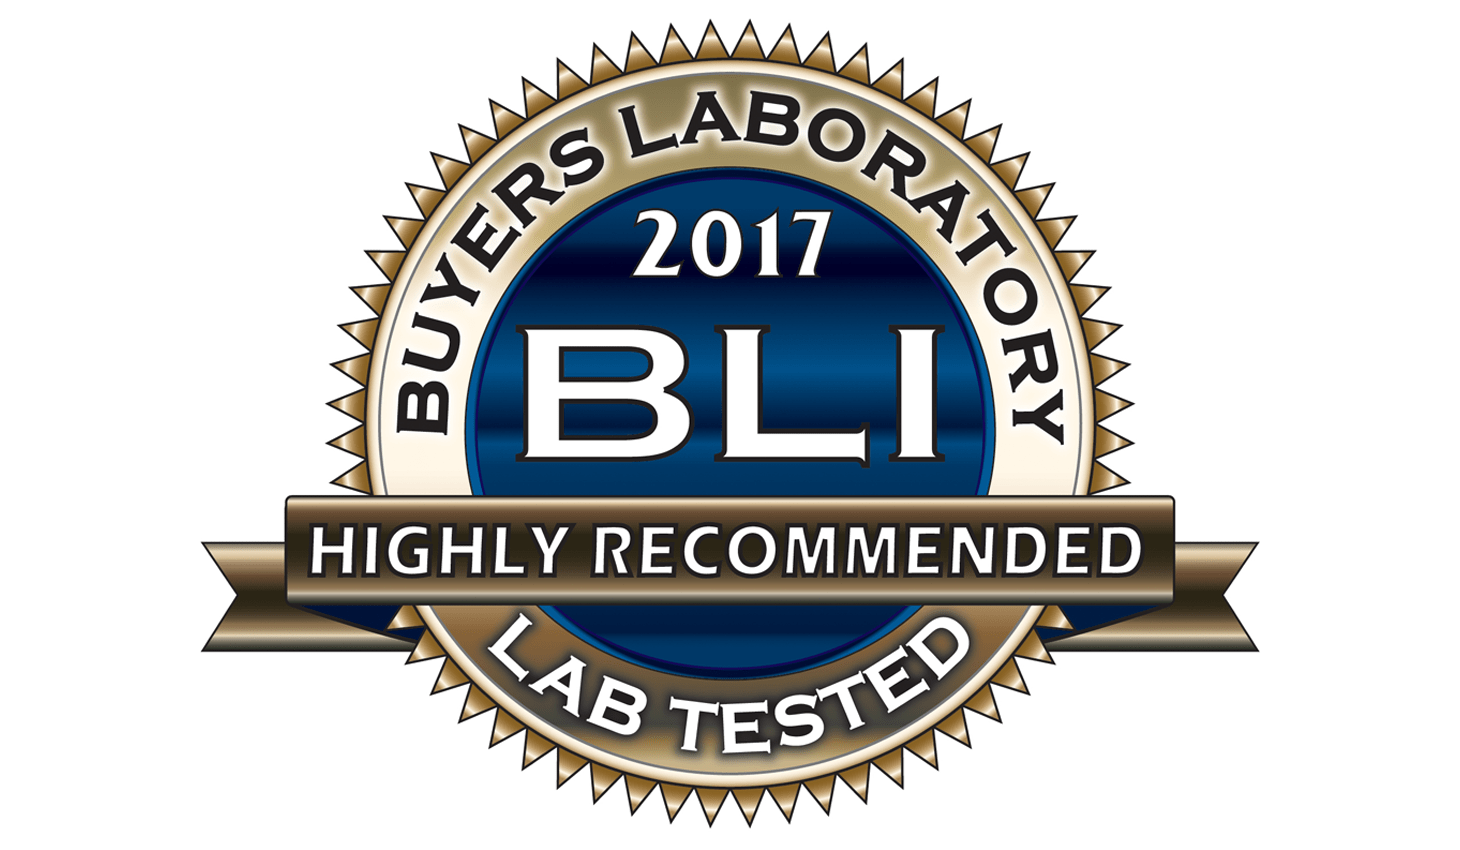 BLI highly recommended award 2017